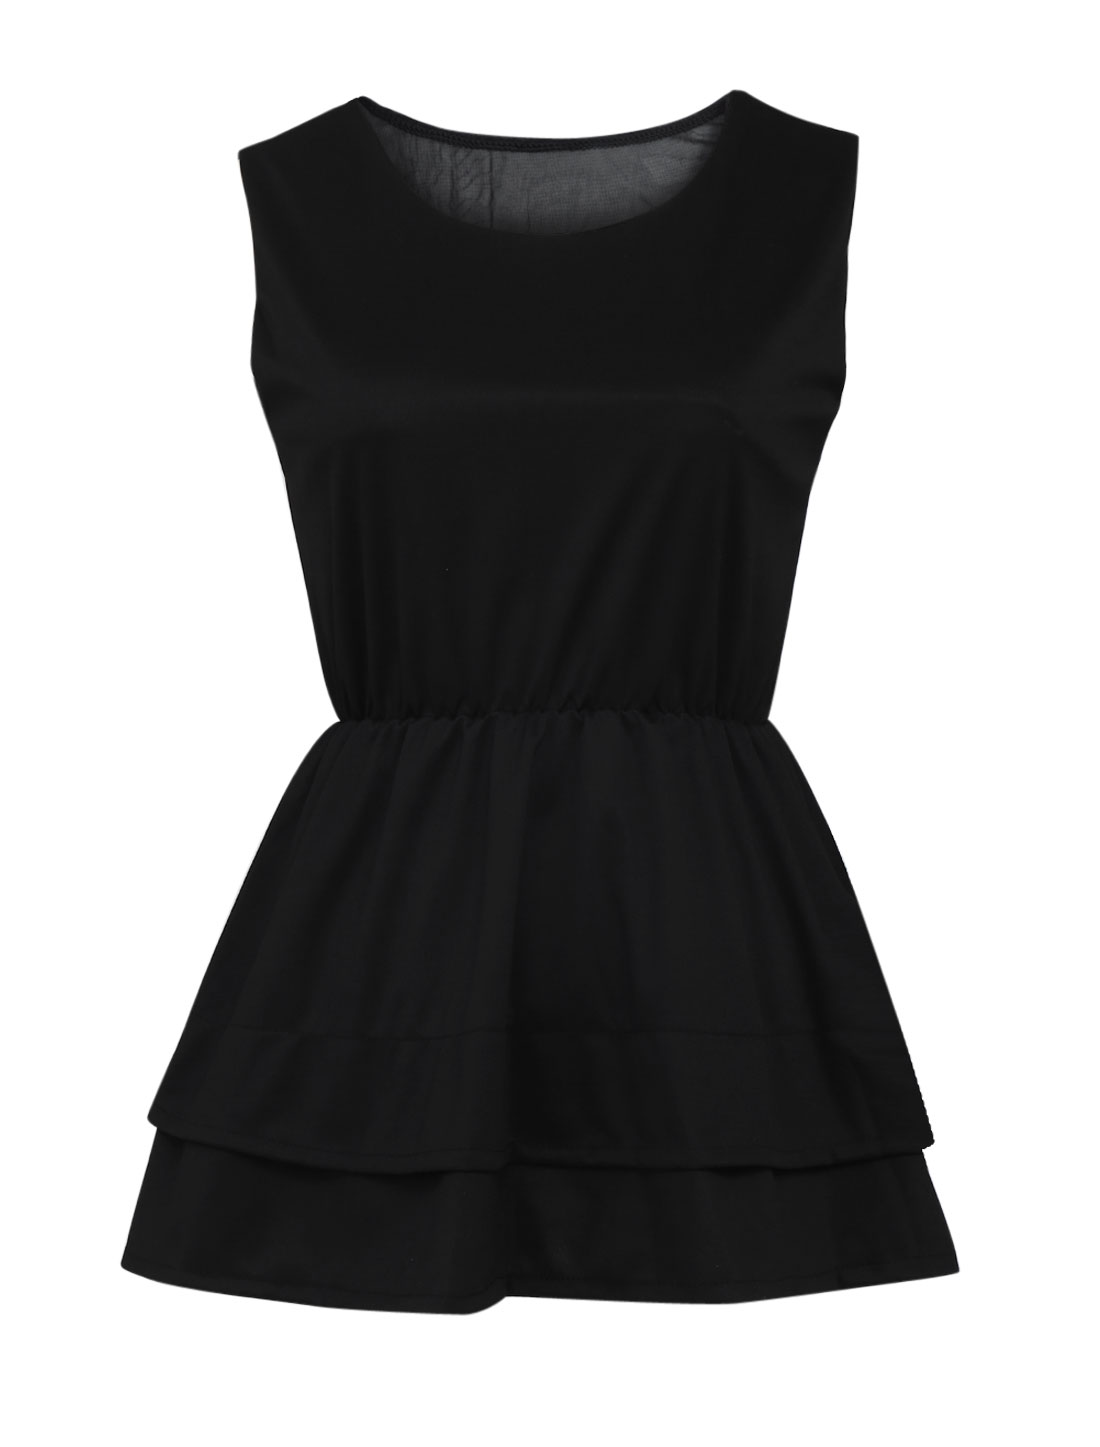 Lady Round Neck Sleeveless Mesh Panel Back Peplum Top Black S